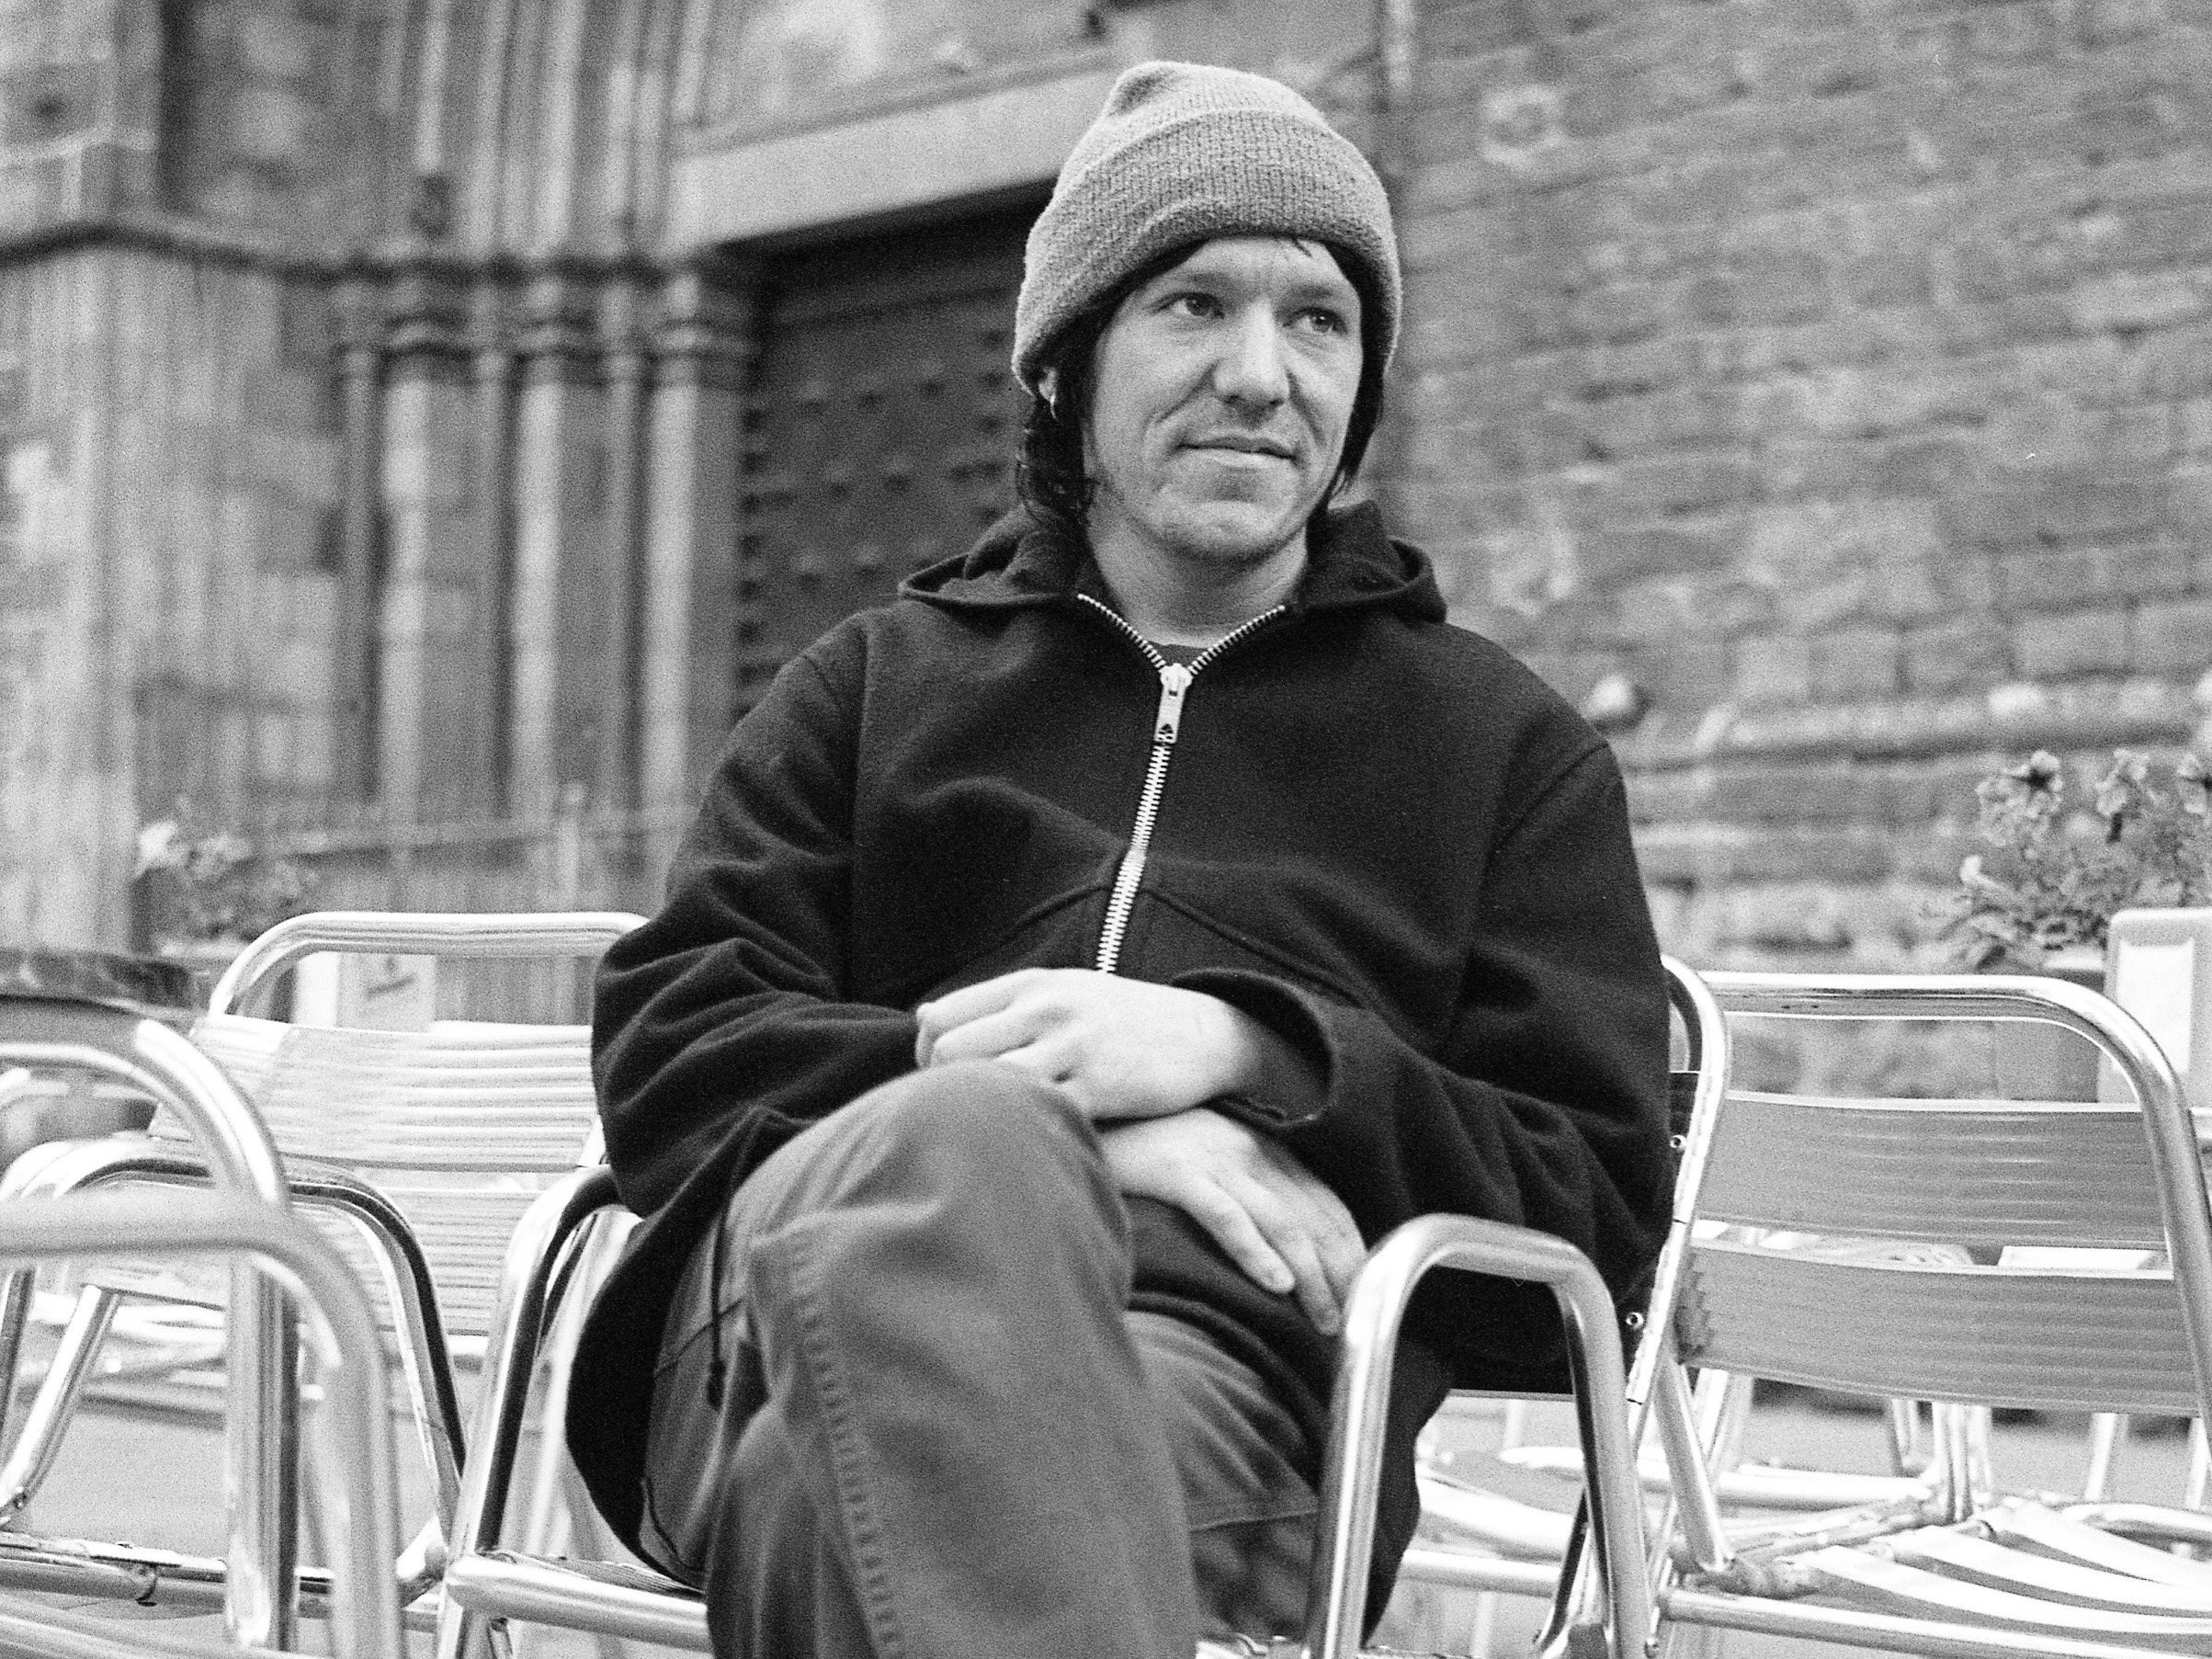 +1: Remembering Elliott Smith's Masterpiece, 'Either/Or,' 20 Years Later